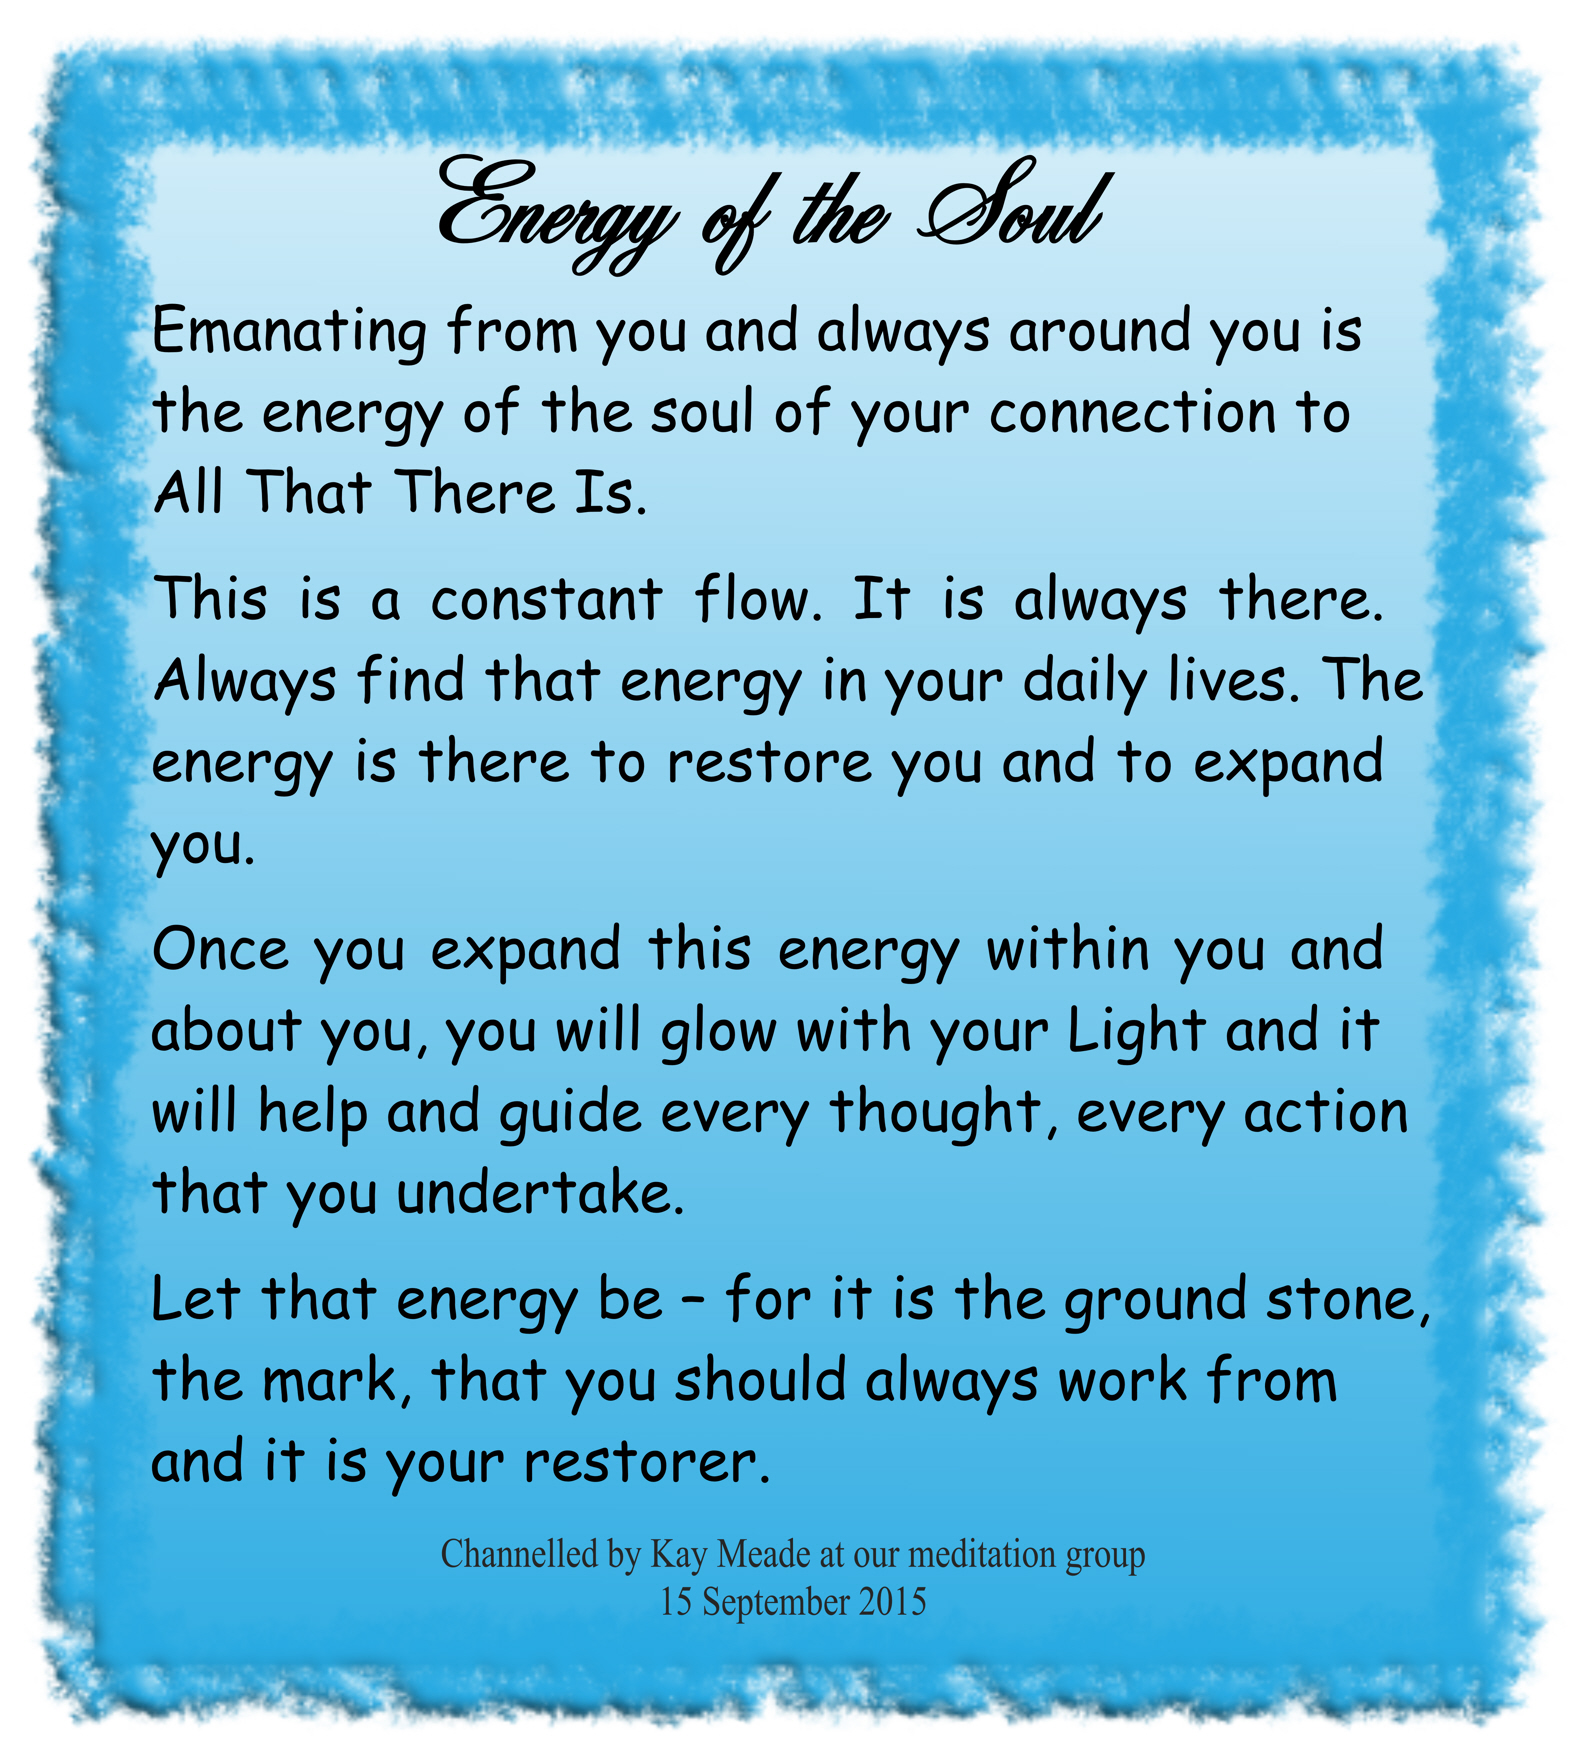 Energy of the Soul